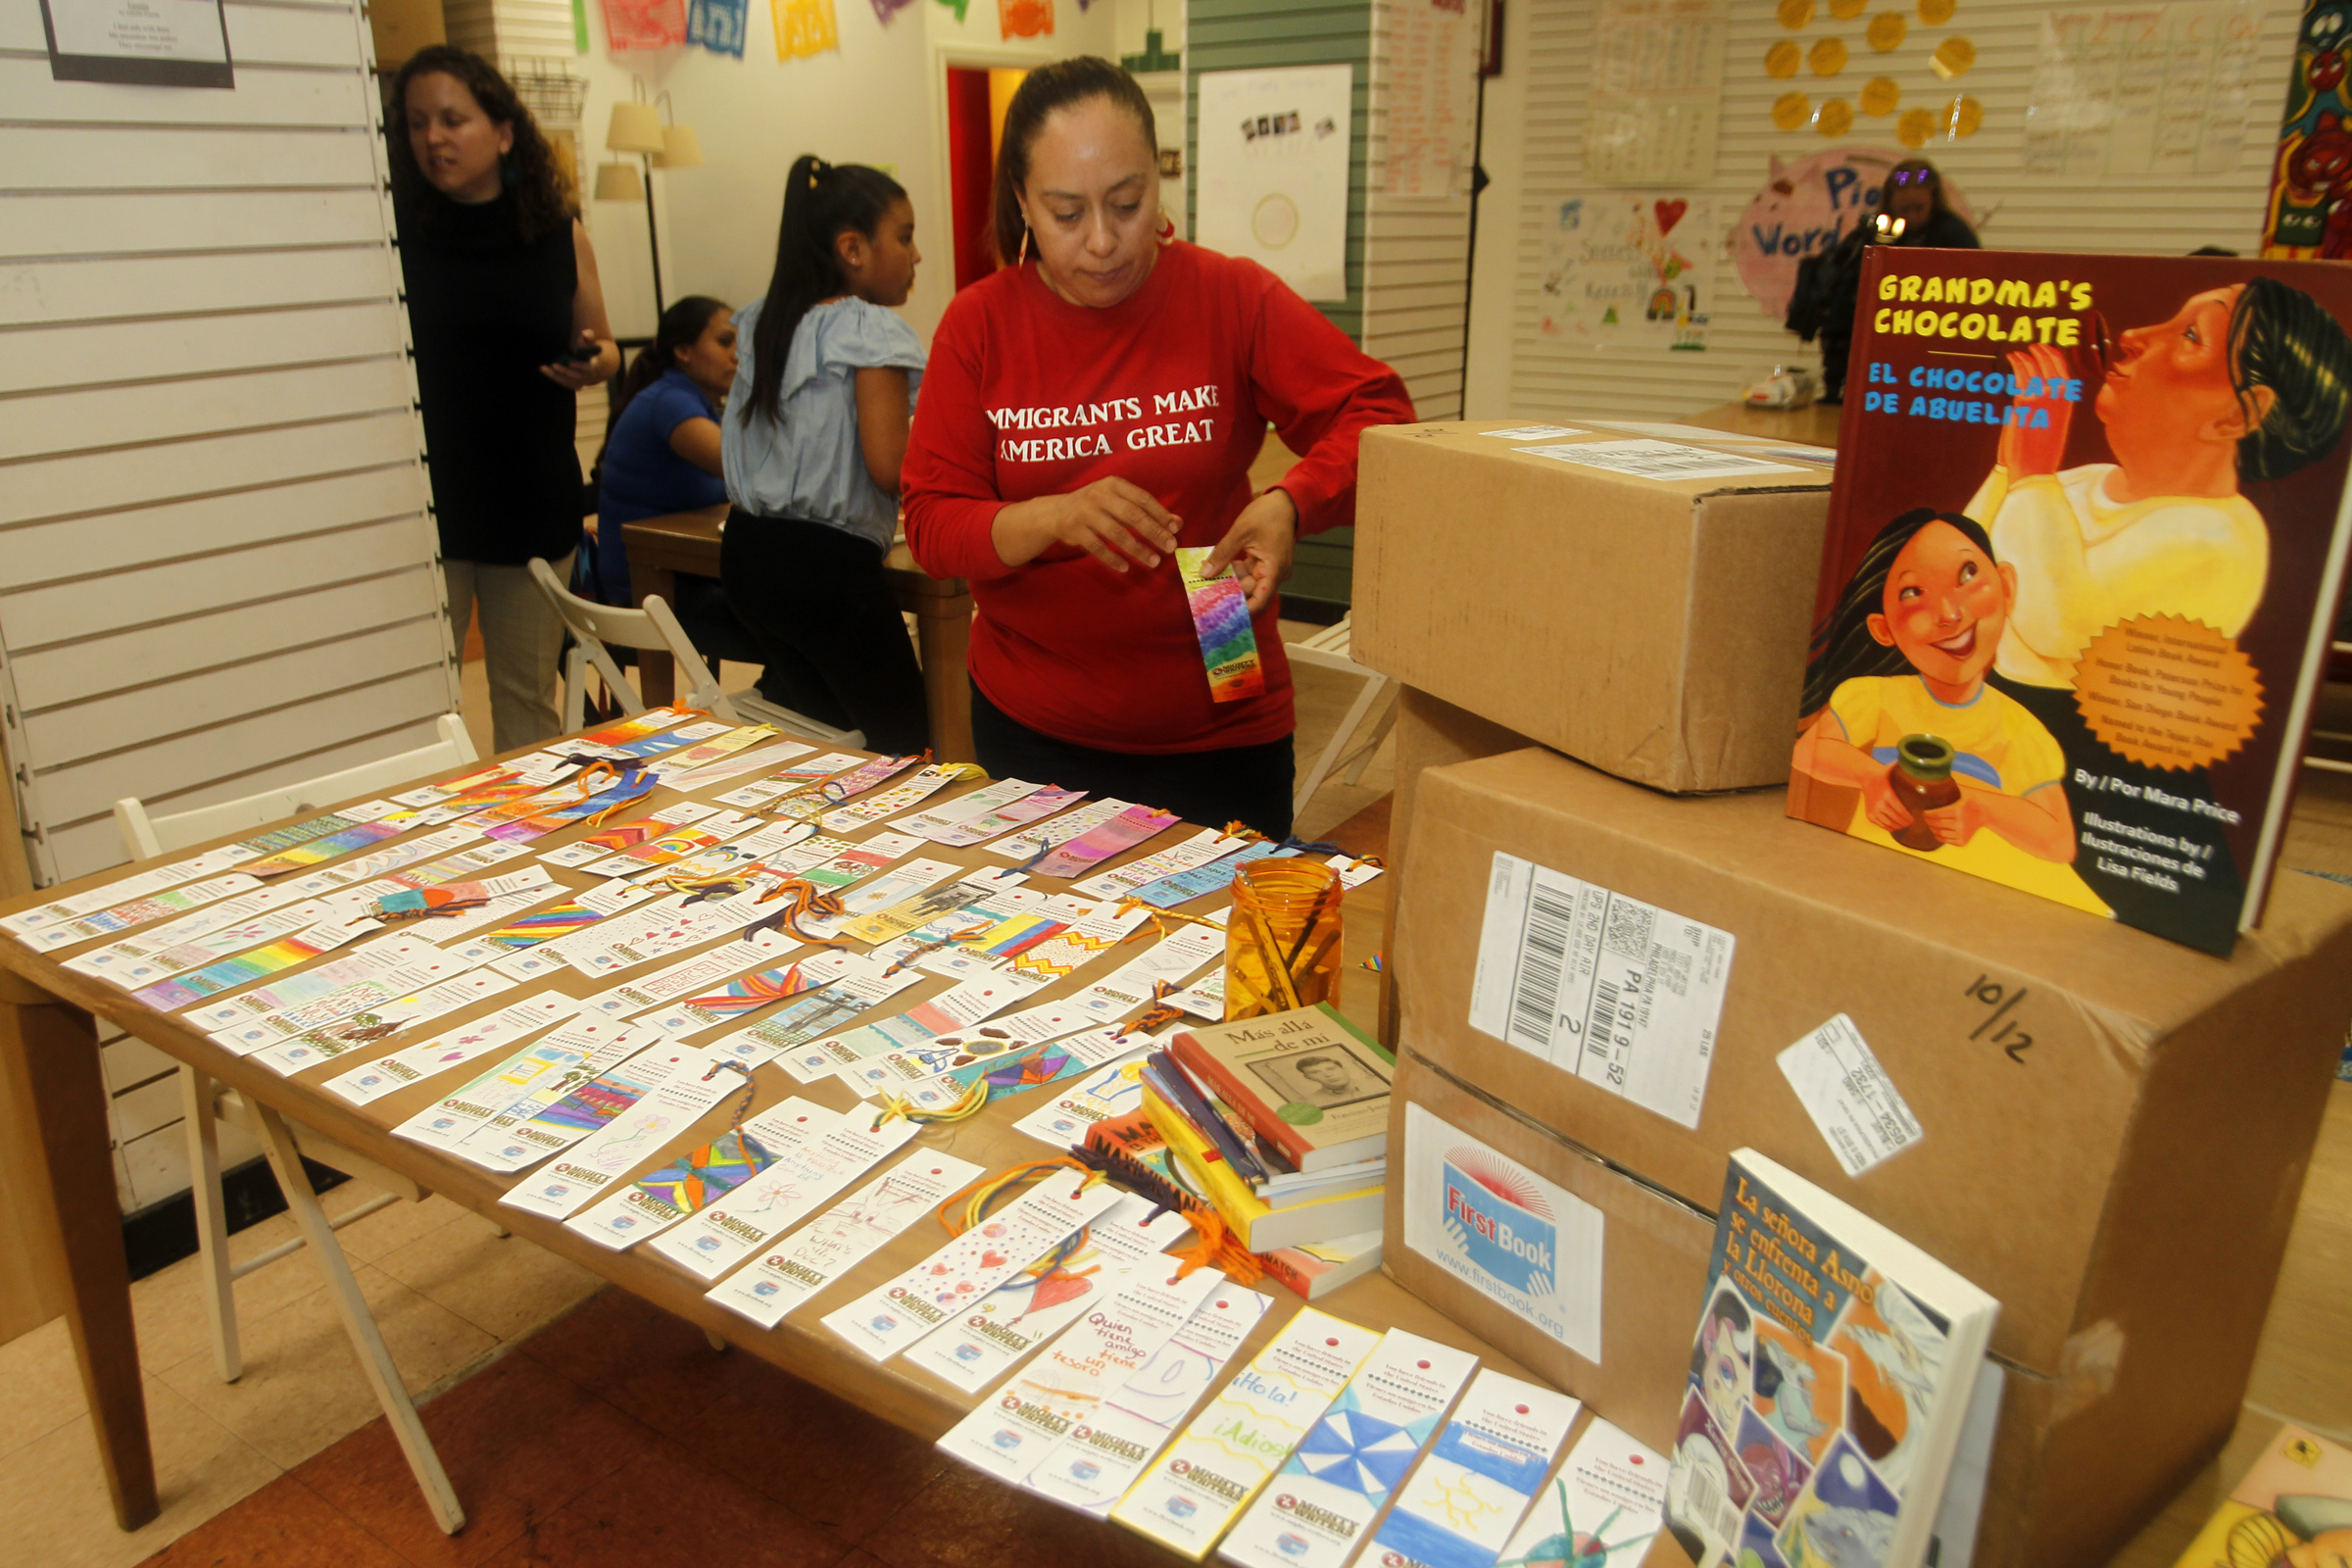 Alma Romero looks over the books and bookmarks going the Berks County detention center at Mighty Writers´ El Futuro location in the Italian Market on Thursday, June 28.